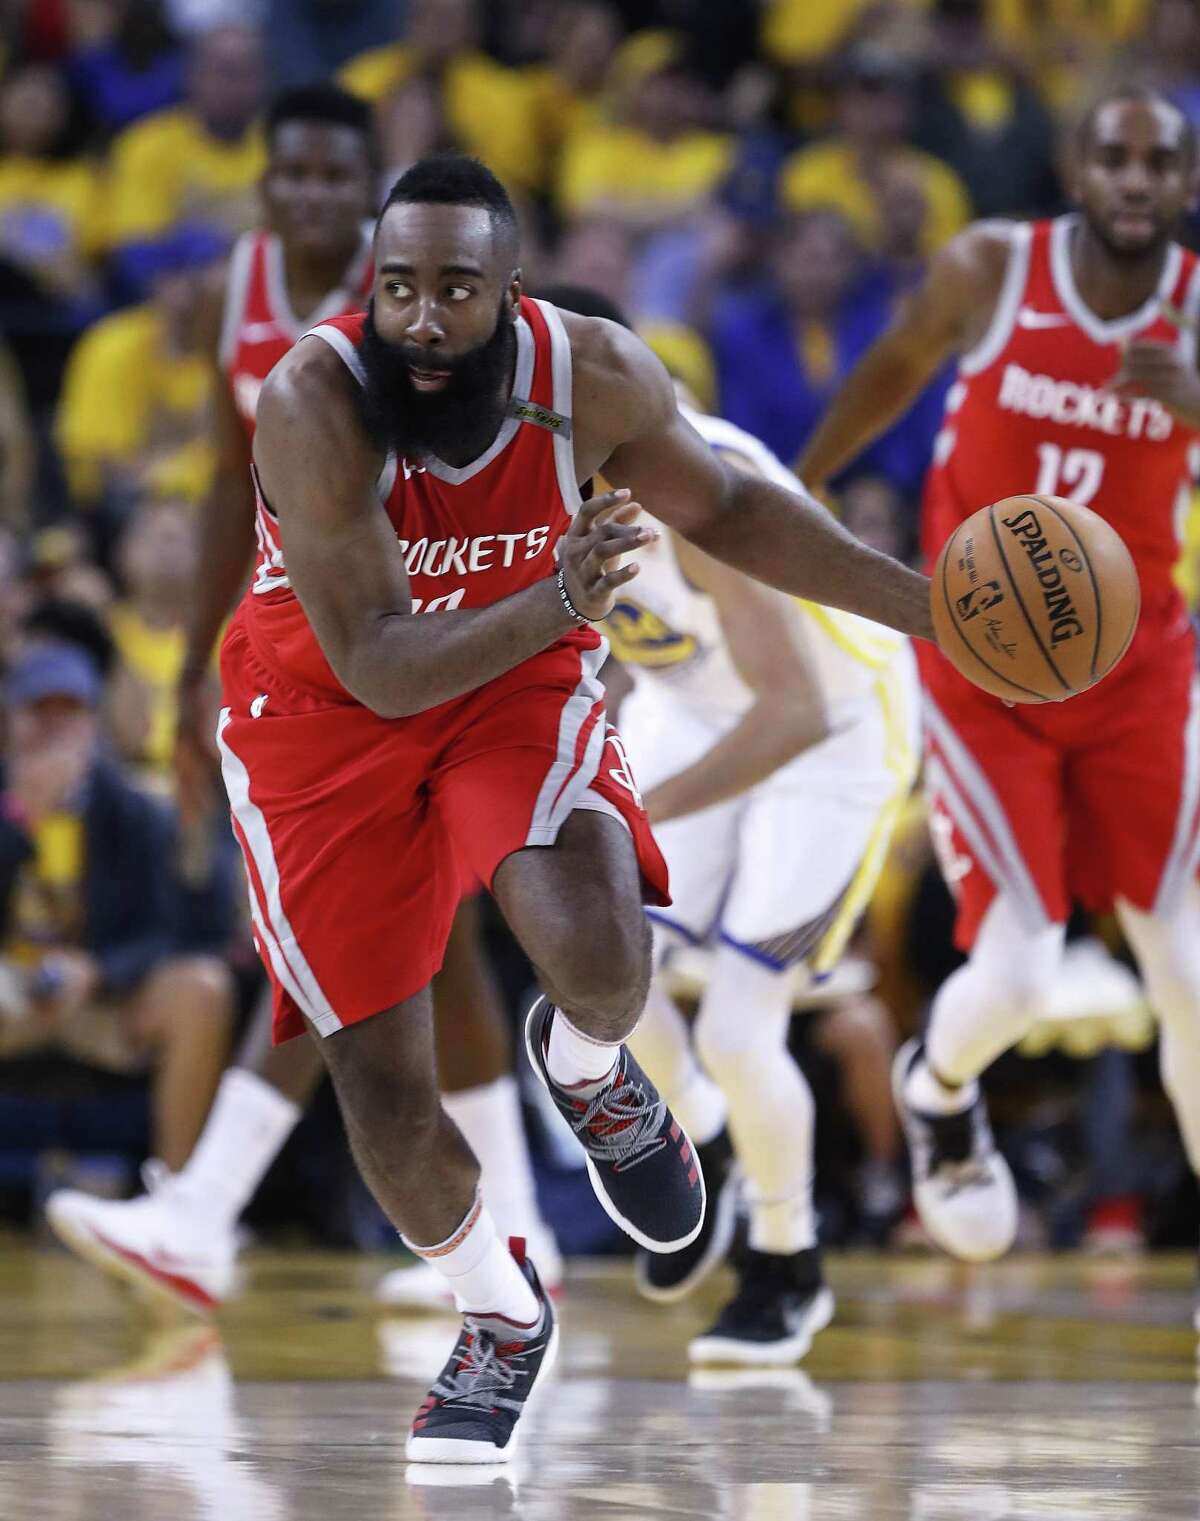 Houston Rockets guard James Harden (13) runs the ball upcourt against the Golden State Warriors during the first half of Game 6 of the NBA Western Conference Finals at Oracle Arena, Saturday, May 26, 2018, in Oakland. ( Karen Warren / Houston Chronicle )